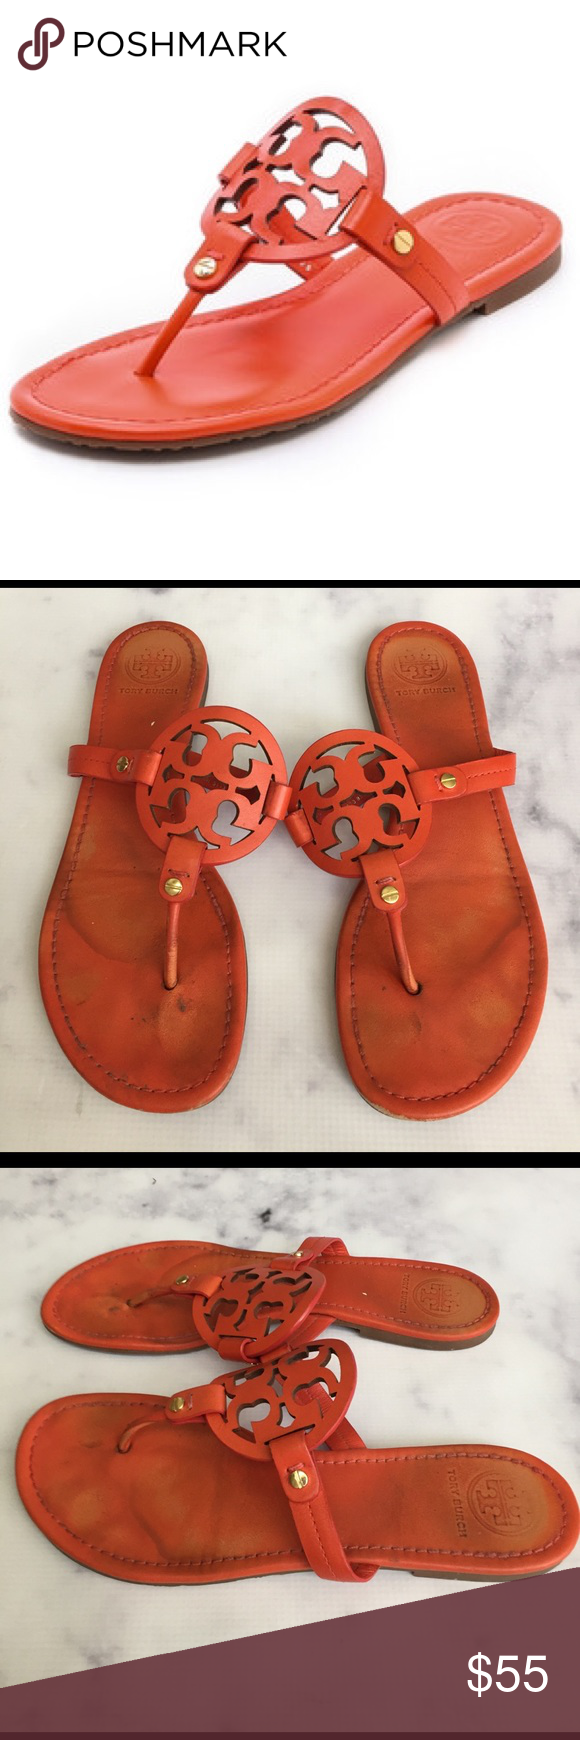 c6c55db4c48537 Tory Burch Miller Tiger Lily Sandals super fun pop of color in these Tiger  Lily (